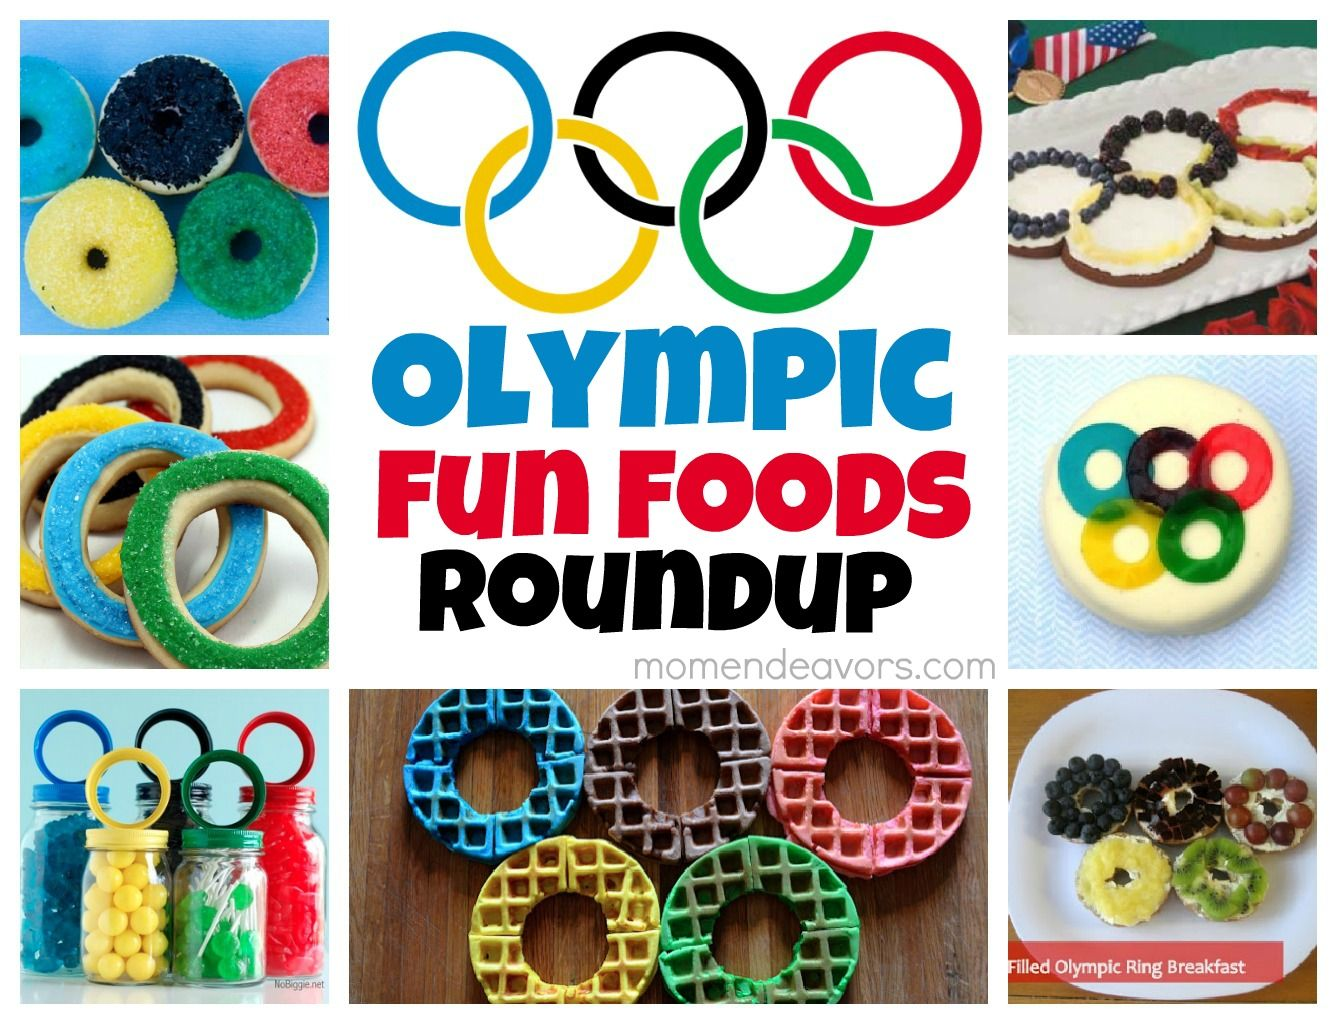 Olympic Rings Food Roundup